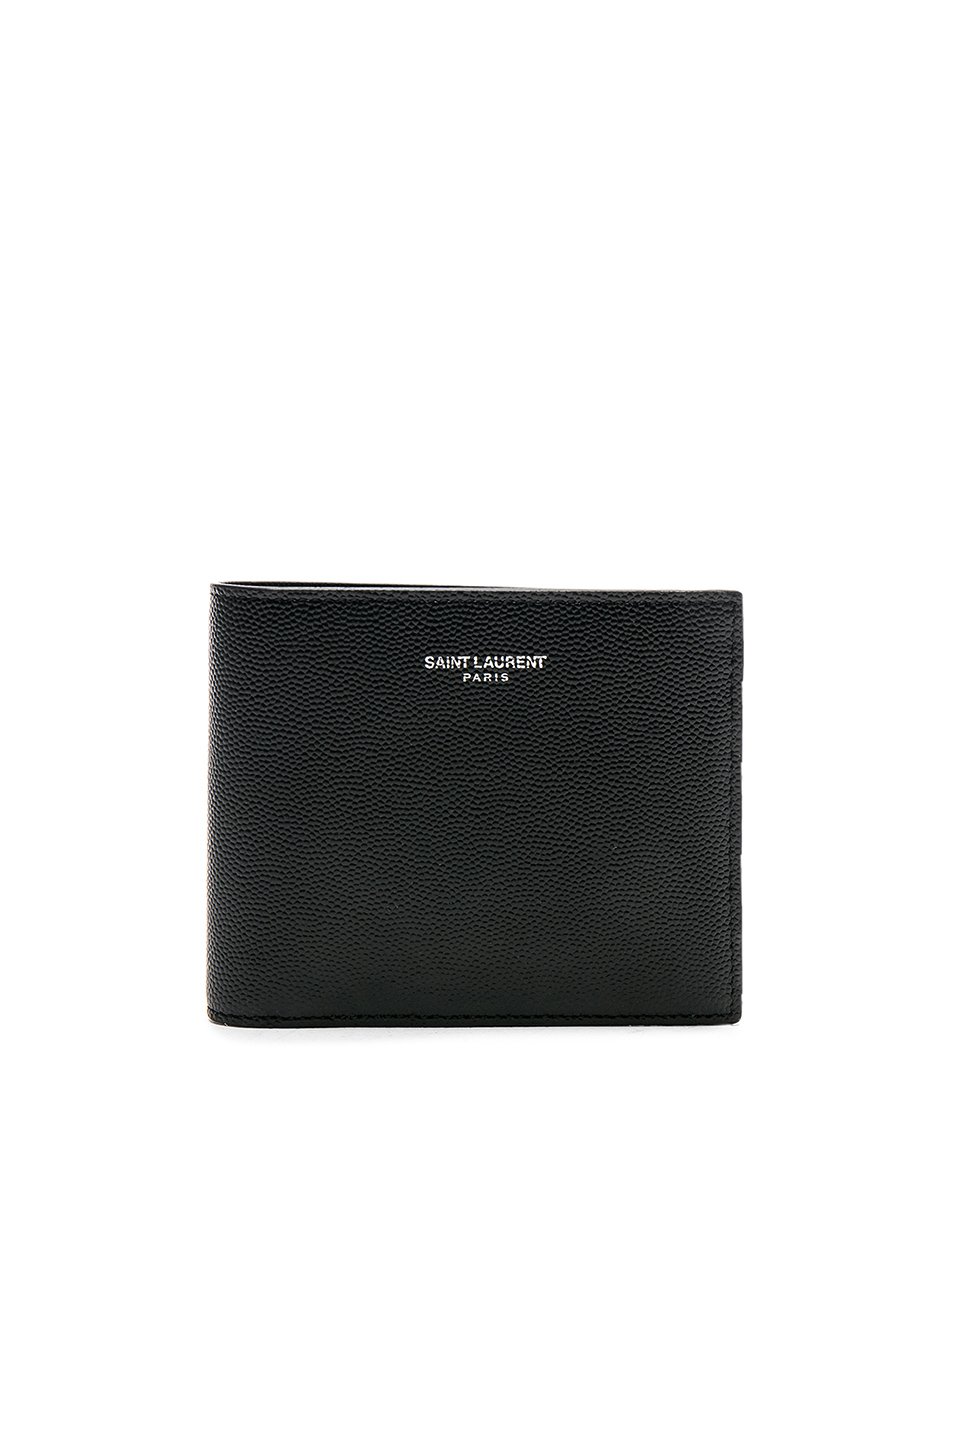 Saint Laurent Billfold Wallet in Black